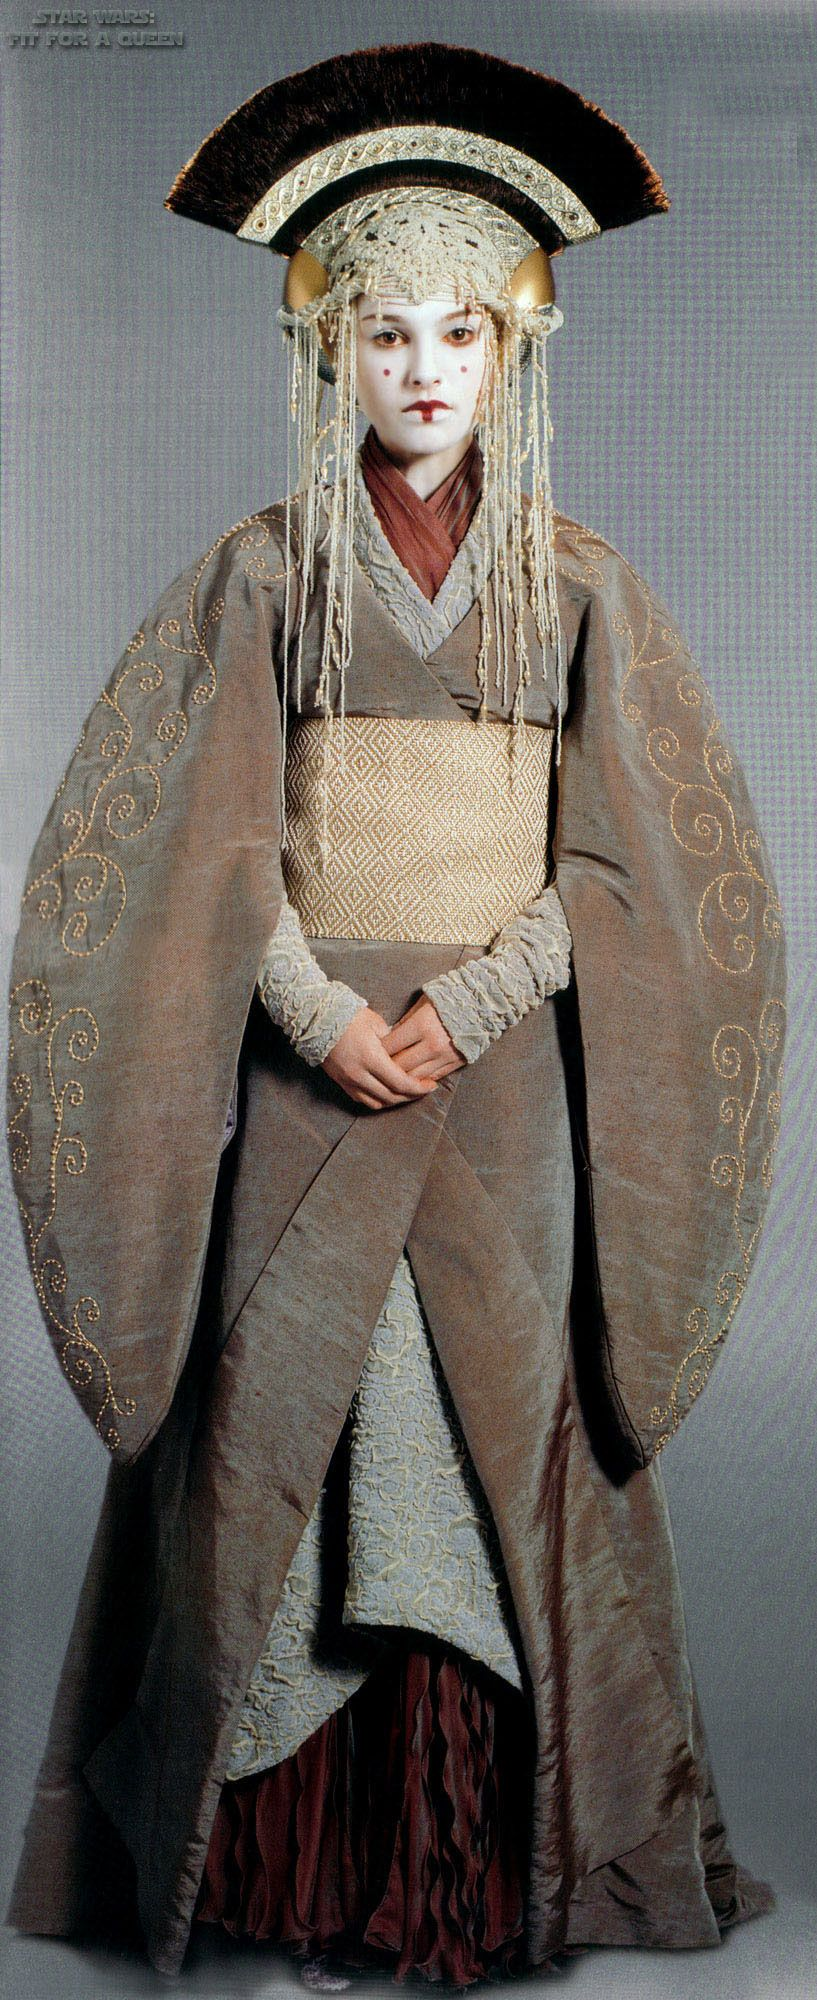 Star Wars Amidala Episode 1 Coruscant Kimono Costume Star Wars Film Star Wars Episodes Star Wars Padme